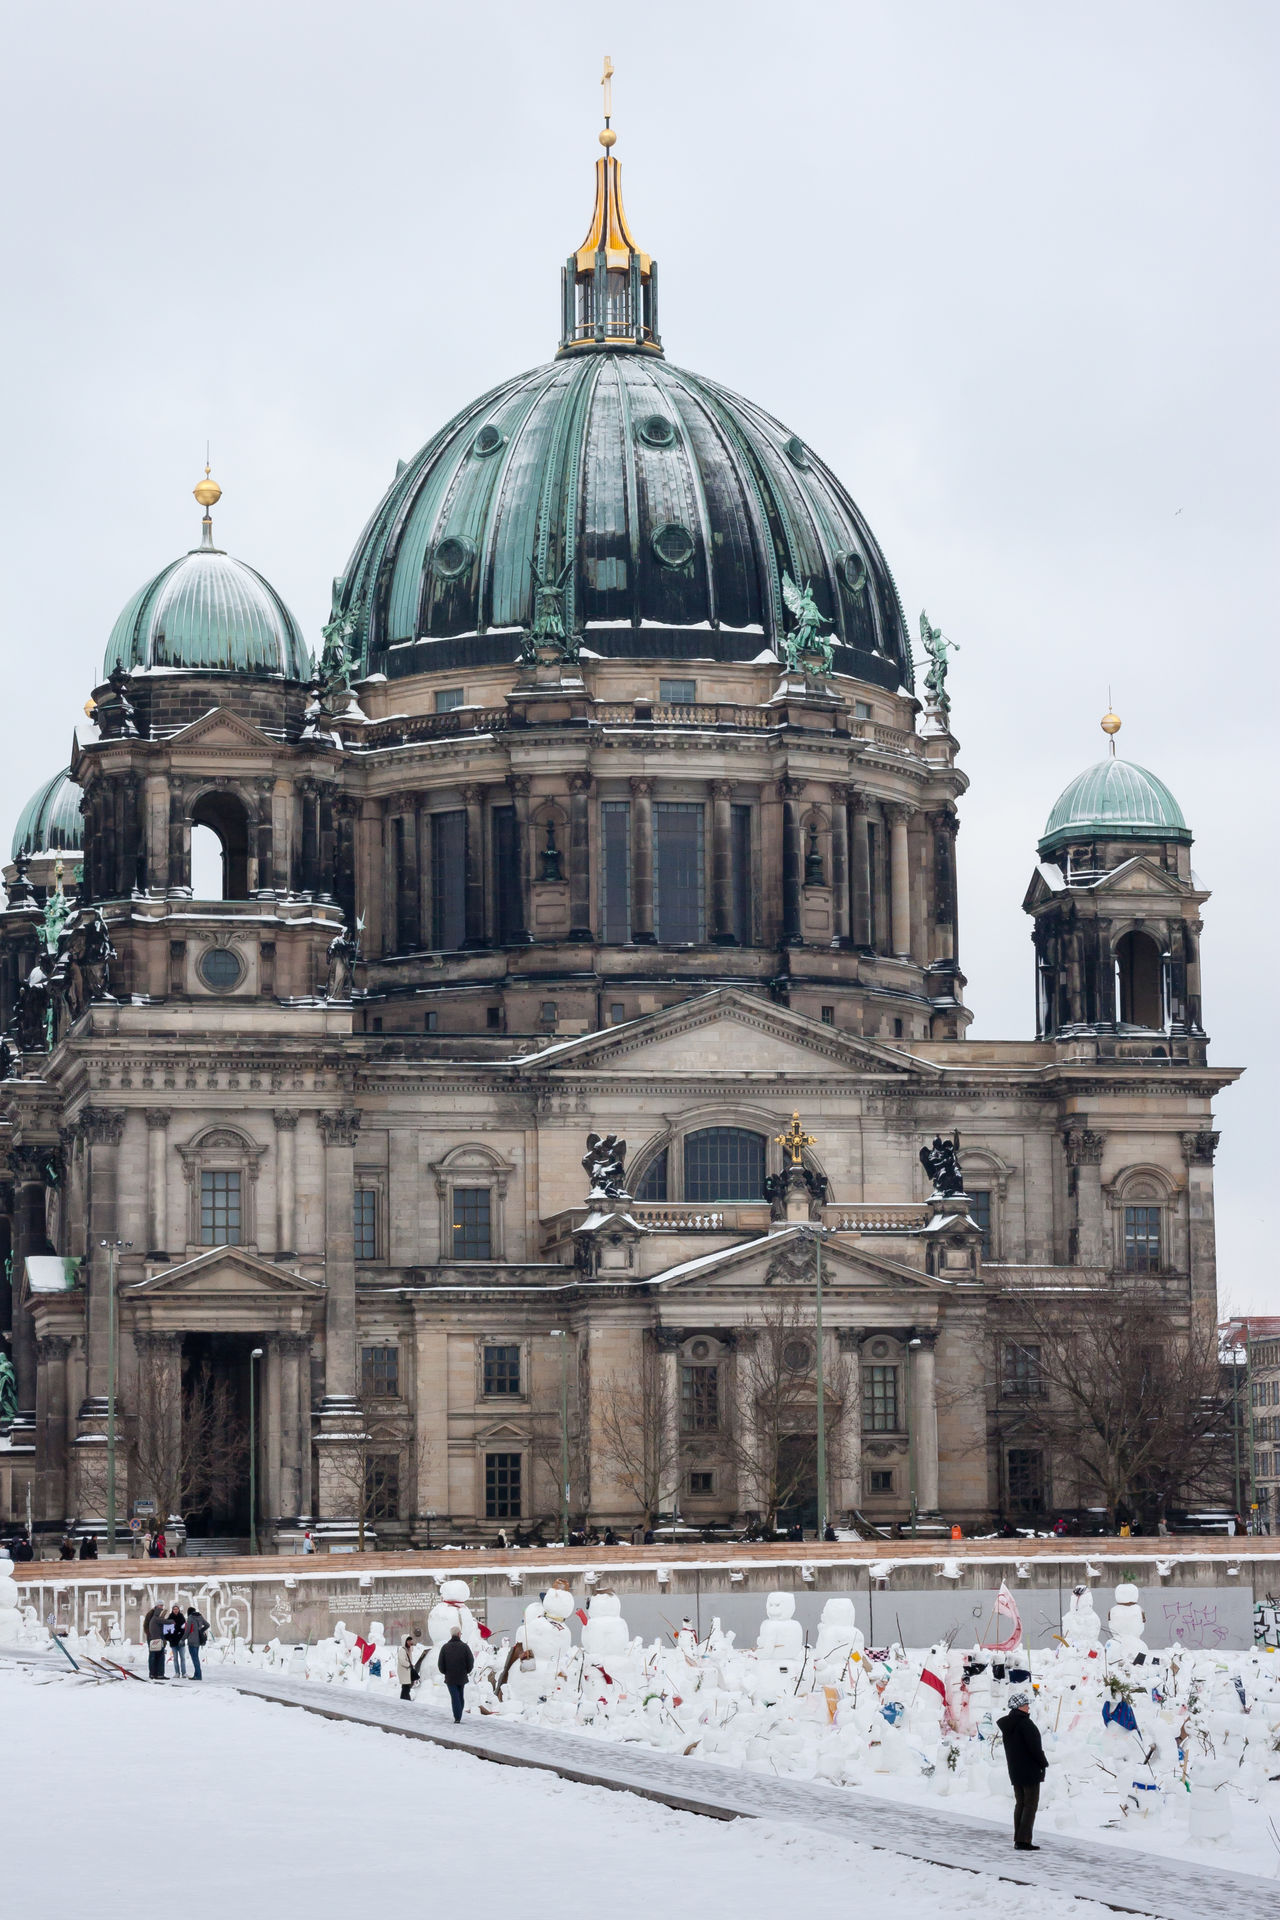 Beautiful stock photos of schneemann, dome, architecture, building exterior, built structure